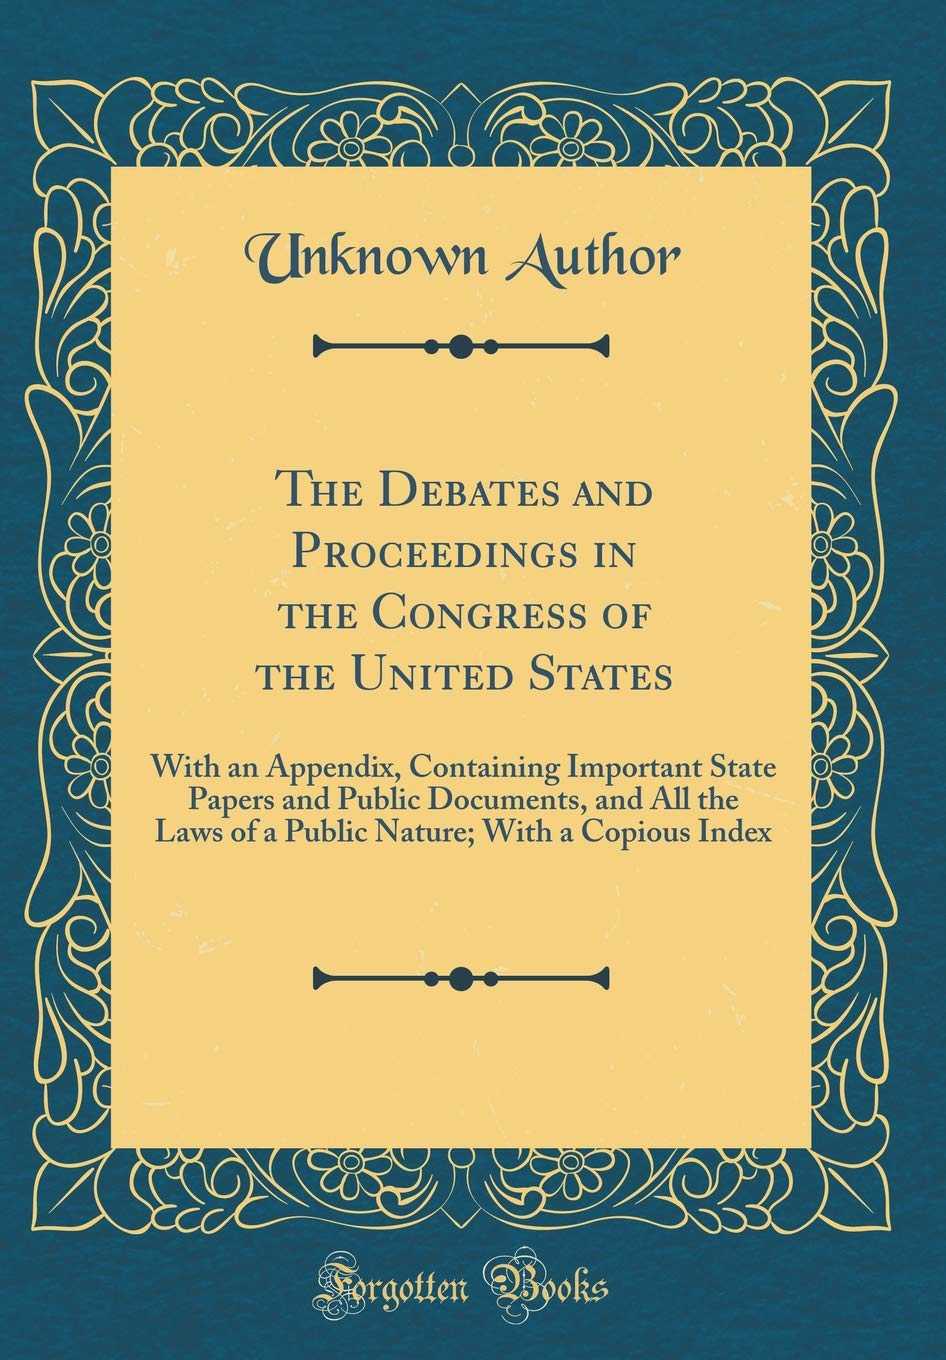 Download The Debates and Proceedings in the Congress of the United States: With an Appendix, Containing Important State Papers and Public Documents, and All ... With a Copious Index (Classic Reprint) PDF